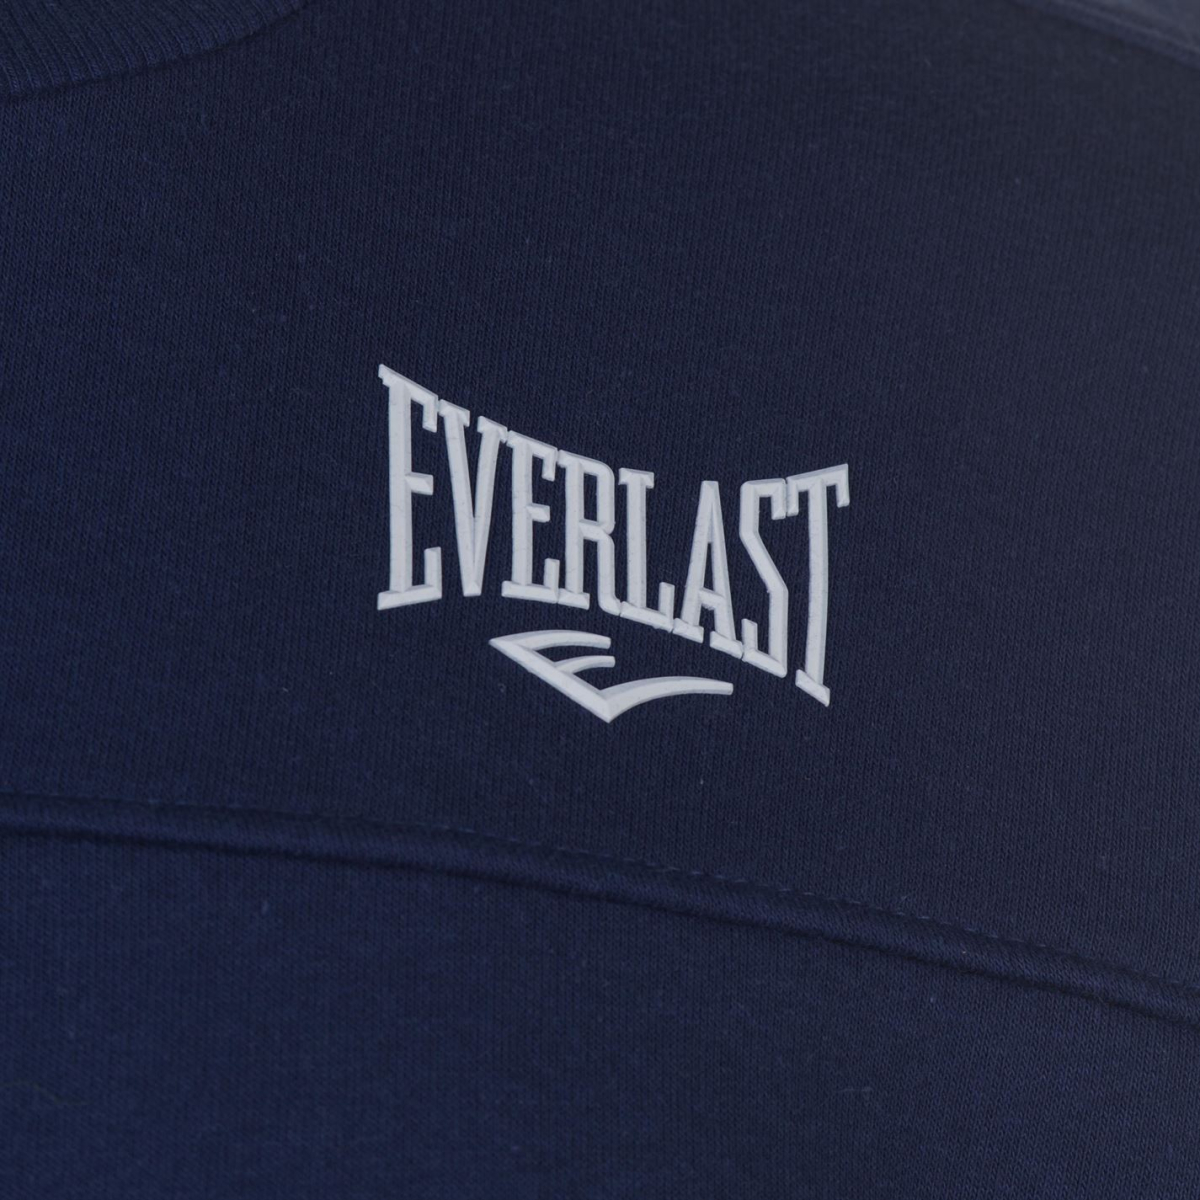 Everlast Crew Neck Sweatshirt Herren Navy